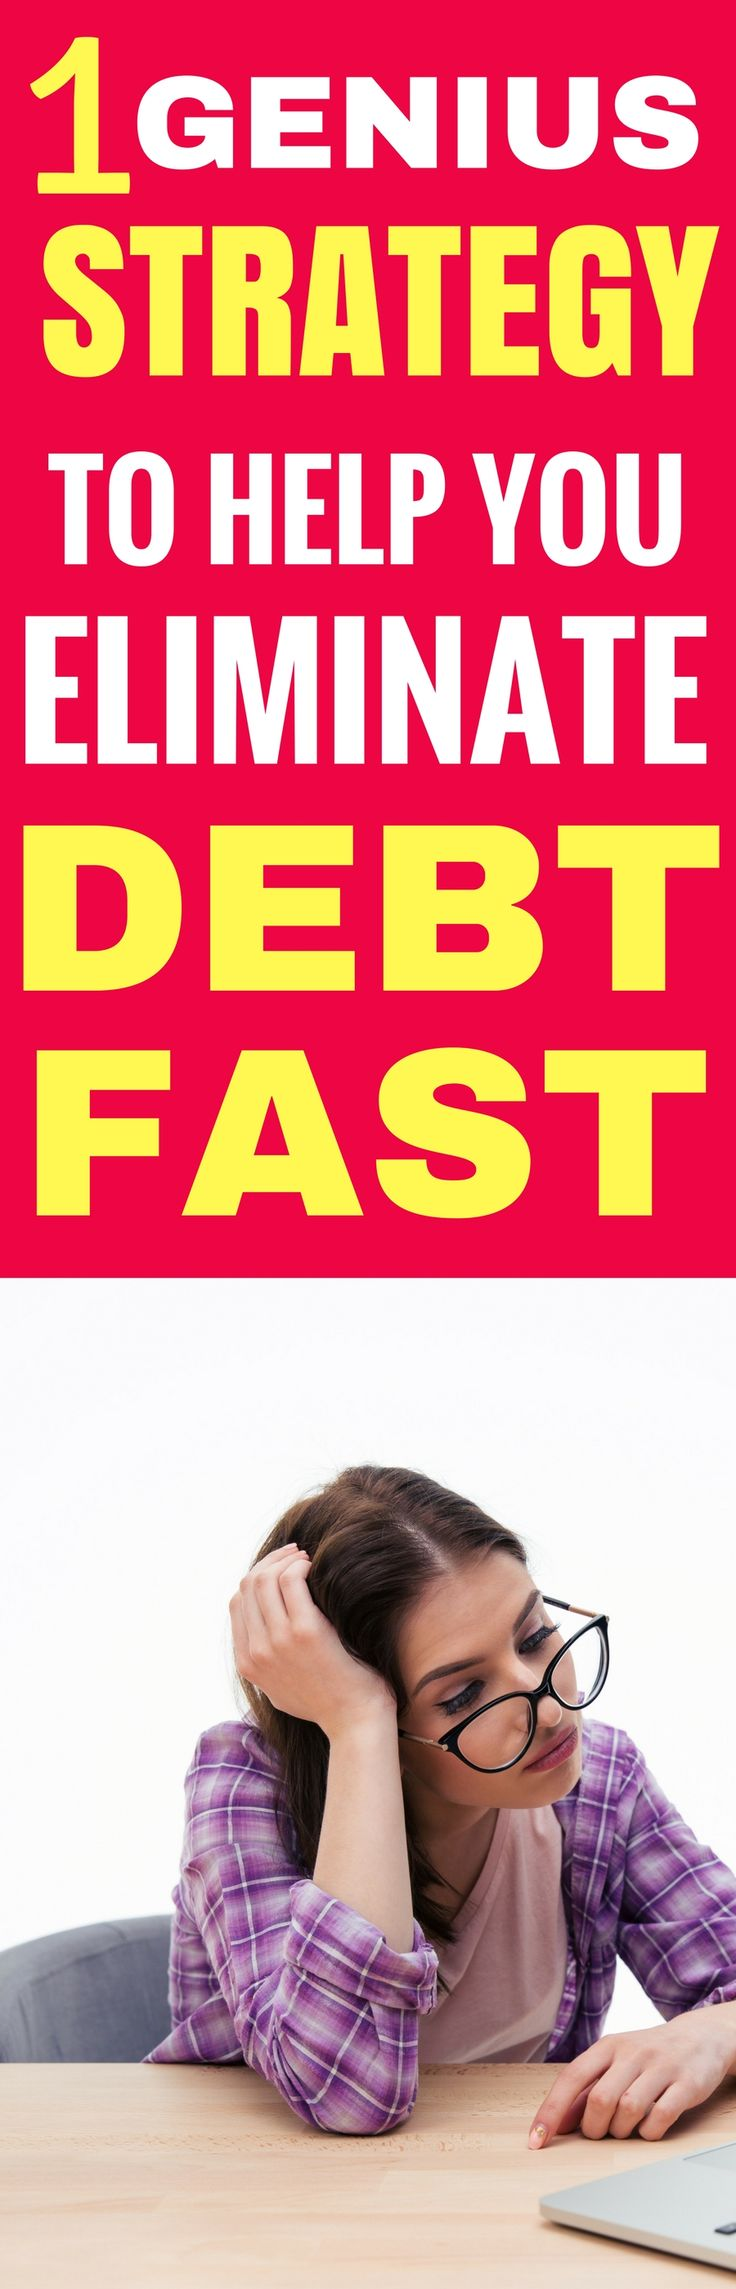 This genius strategy to get out of debt fast is seriously the BEST! I'm so happy I found an amazing, quick way to pay off my debt and cannow form a great debt pay off strategy that I can stick to! I'm definitely pinning this!